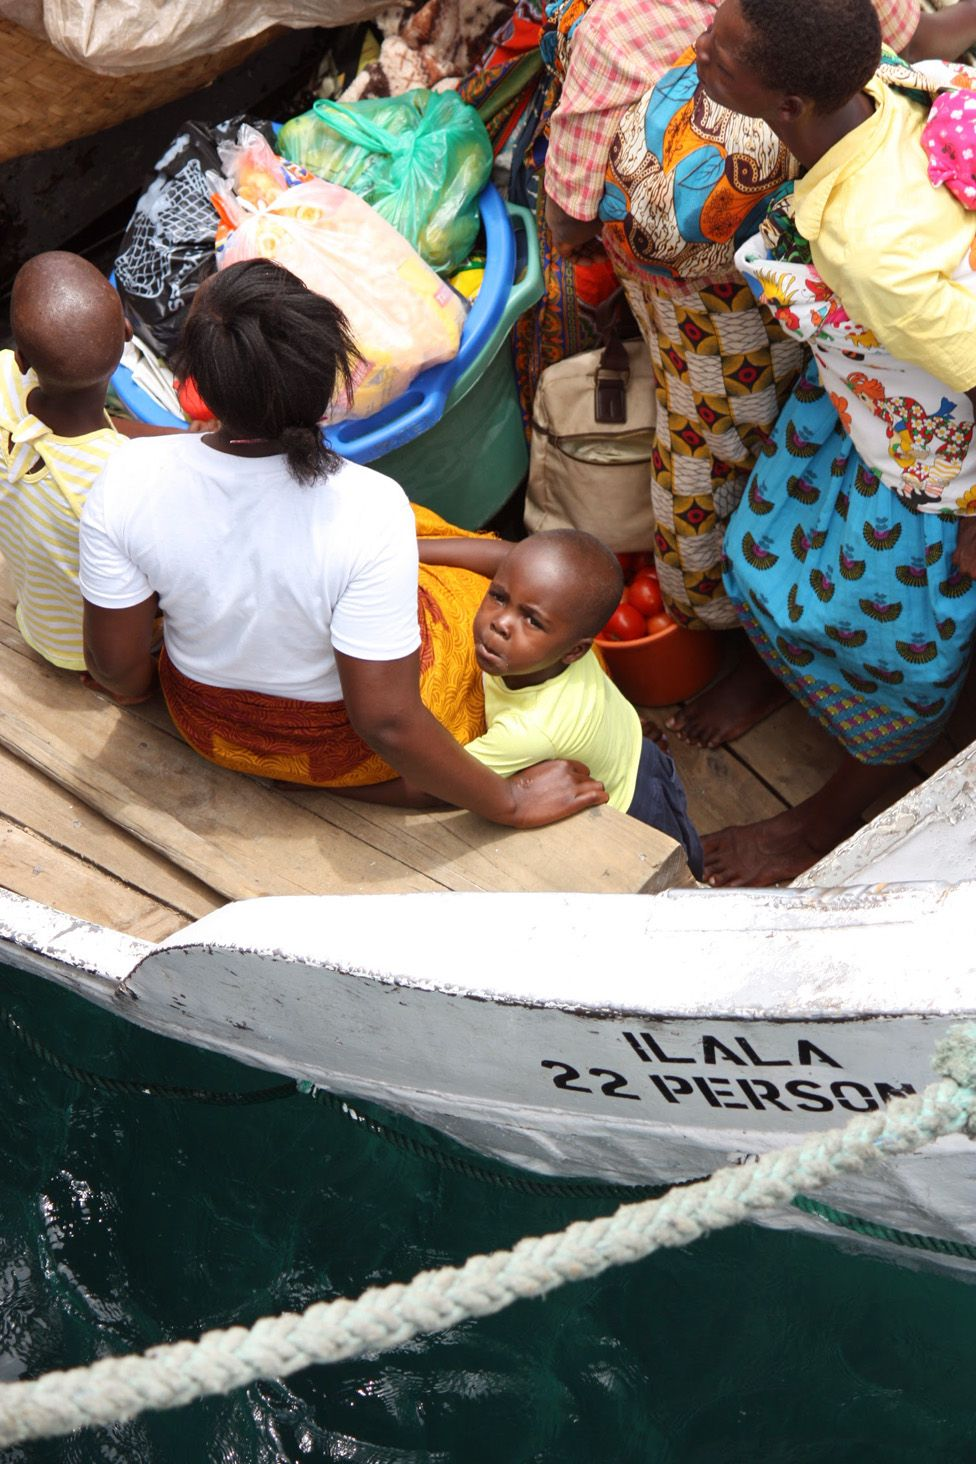 Small boat with passengers